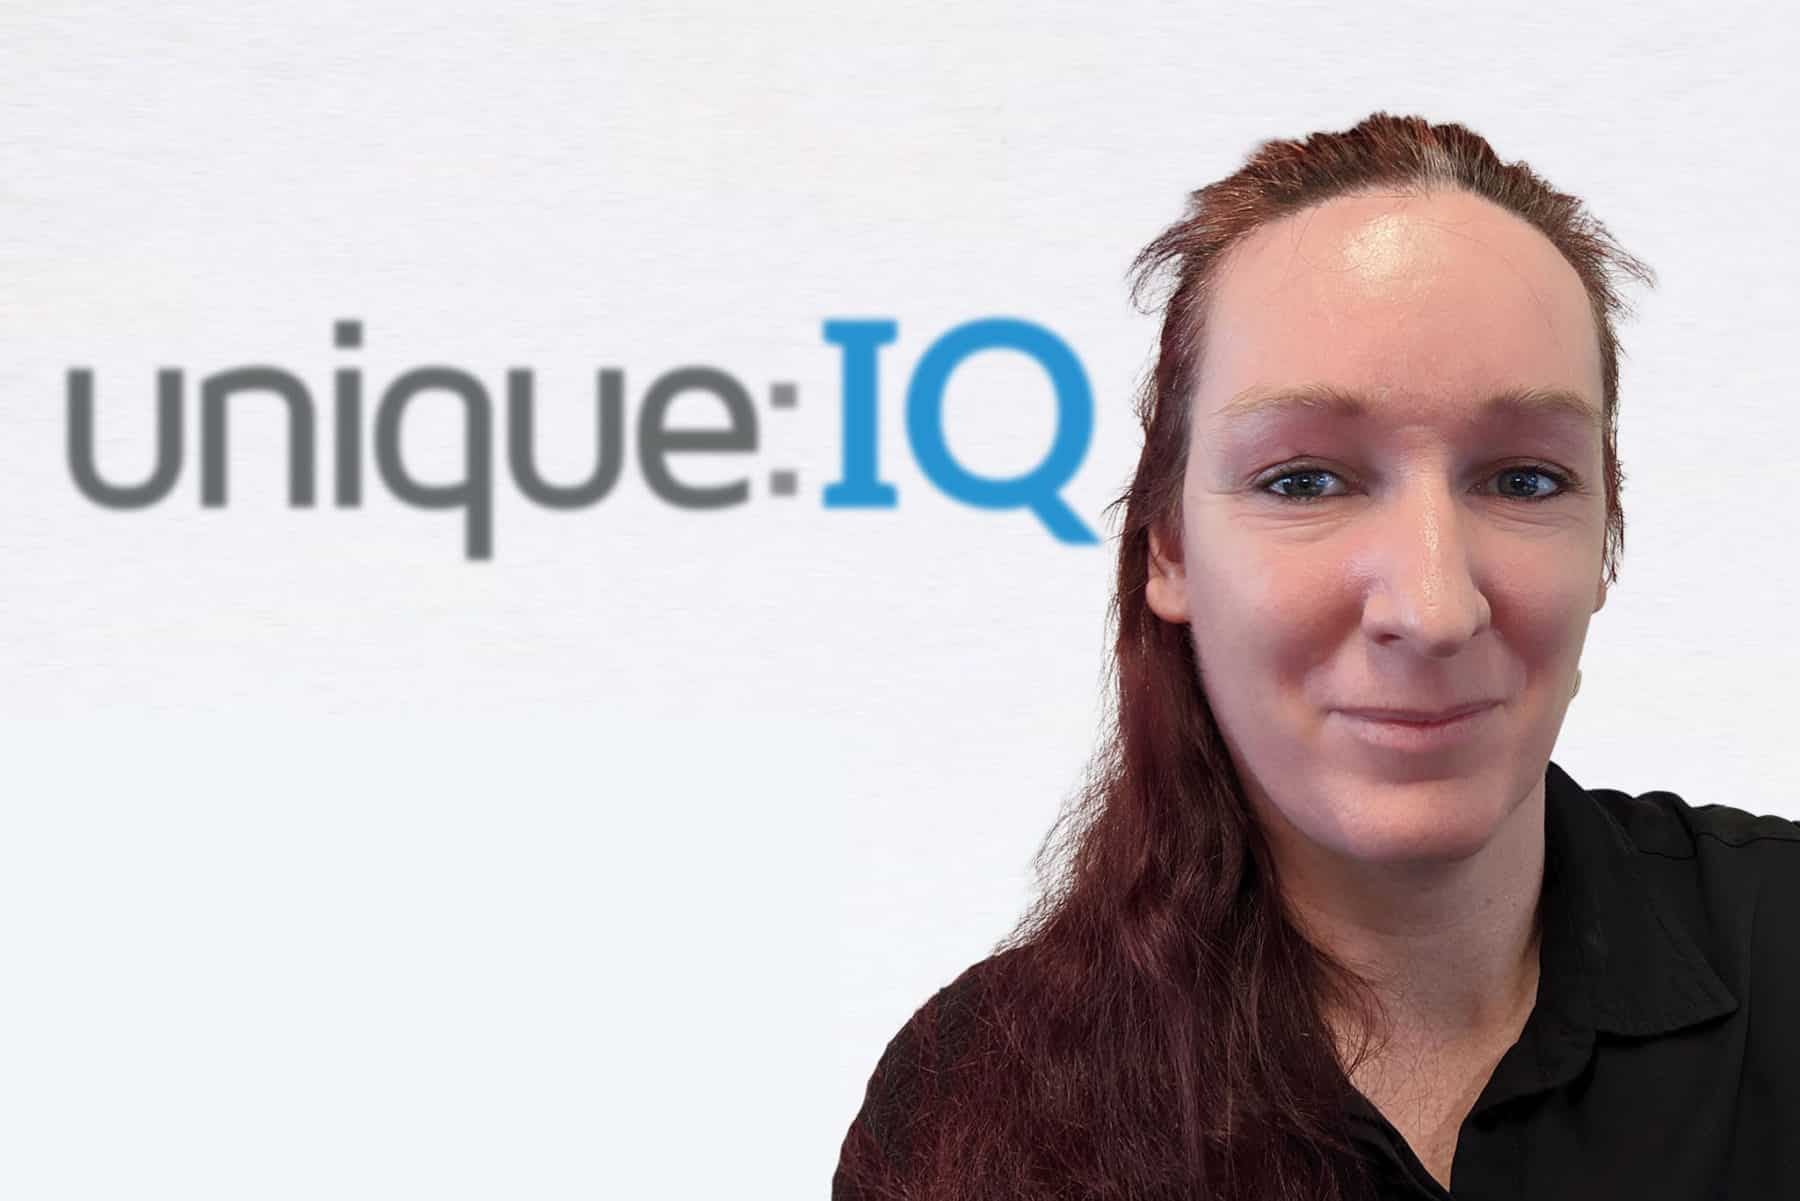 Claire Orchard - Service Desk Analyst